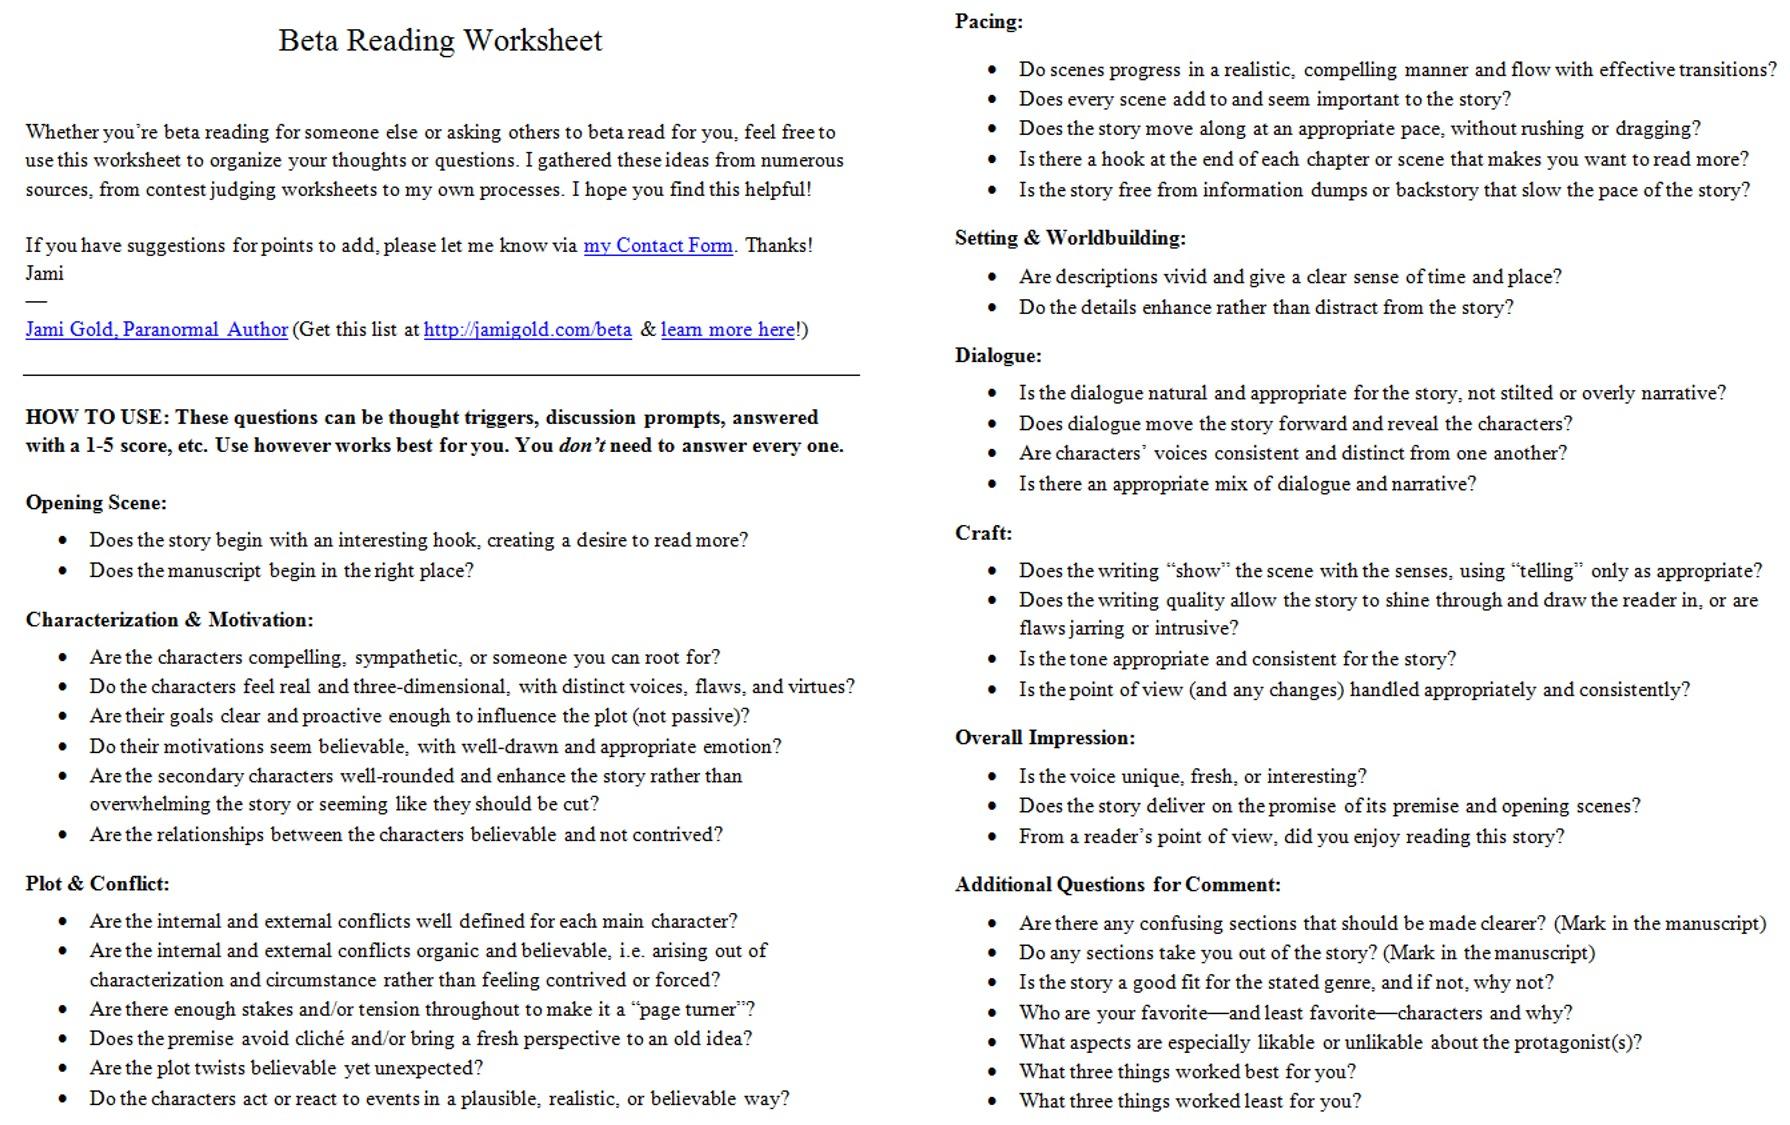 Weirdmailus  Gorgeous Worksheets For Writers  Jami Gold Paranormal Author With Handsome Screen Shot Of The Twopage Beta Reading Worksheet With Beauteous Joining Sentences Worksheet Also Surface Area And Volume Worksheets With Answers In Addition Th Grade Reading Worksheets To Print And Greater Than Less Than And Equal To Worksheets As Well As Writing Worksheets Pdf Additionally Multisyllabic Worksheets From Jamigoldcom With Weirdmailus  Handsome Worksheets For Writers  Jami Gold Paranormal Author With Beauteous Screen Shot Of The Twopage Beta Reading Worksheet And Gorgeous Joining Sentences Worksheet Also Surface Area And Volume Worksheets With Answers In Addition Th Grade Reading Worksheets To Print From Jamigoldcom